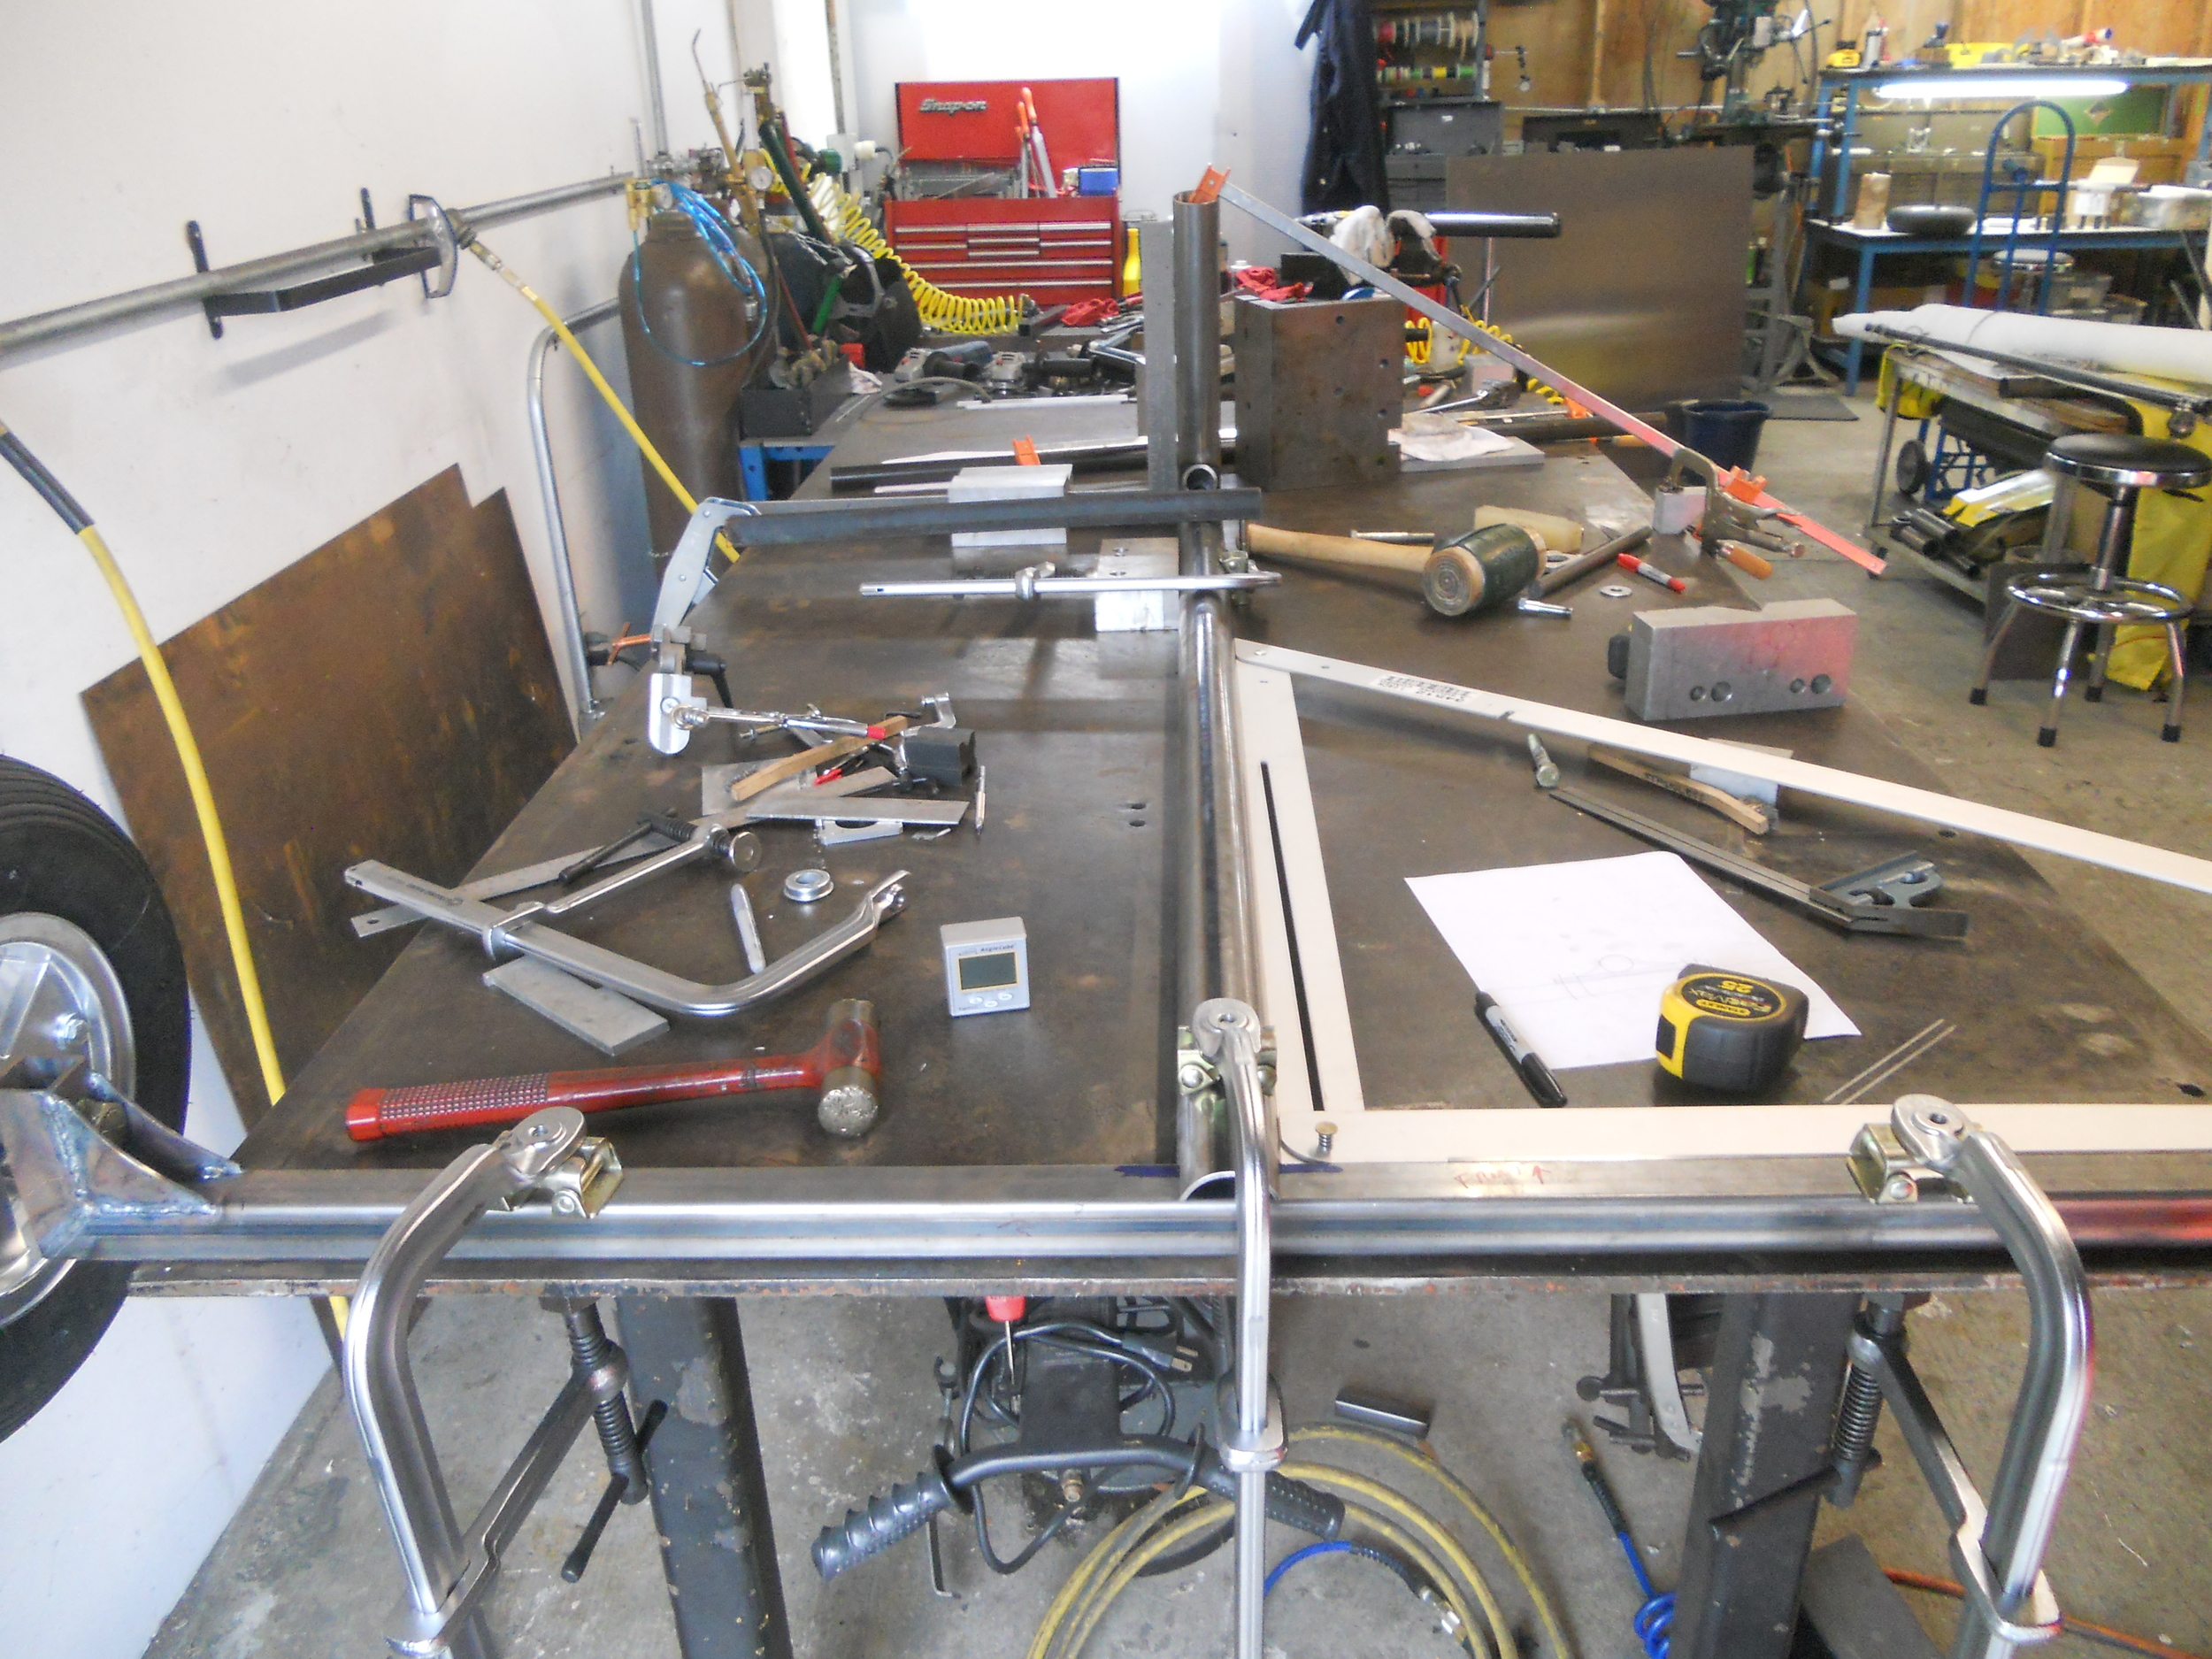 Setting up the rear axle on the welding bench